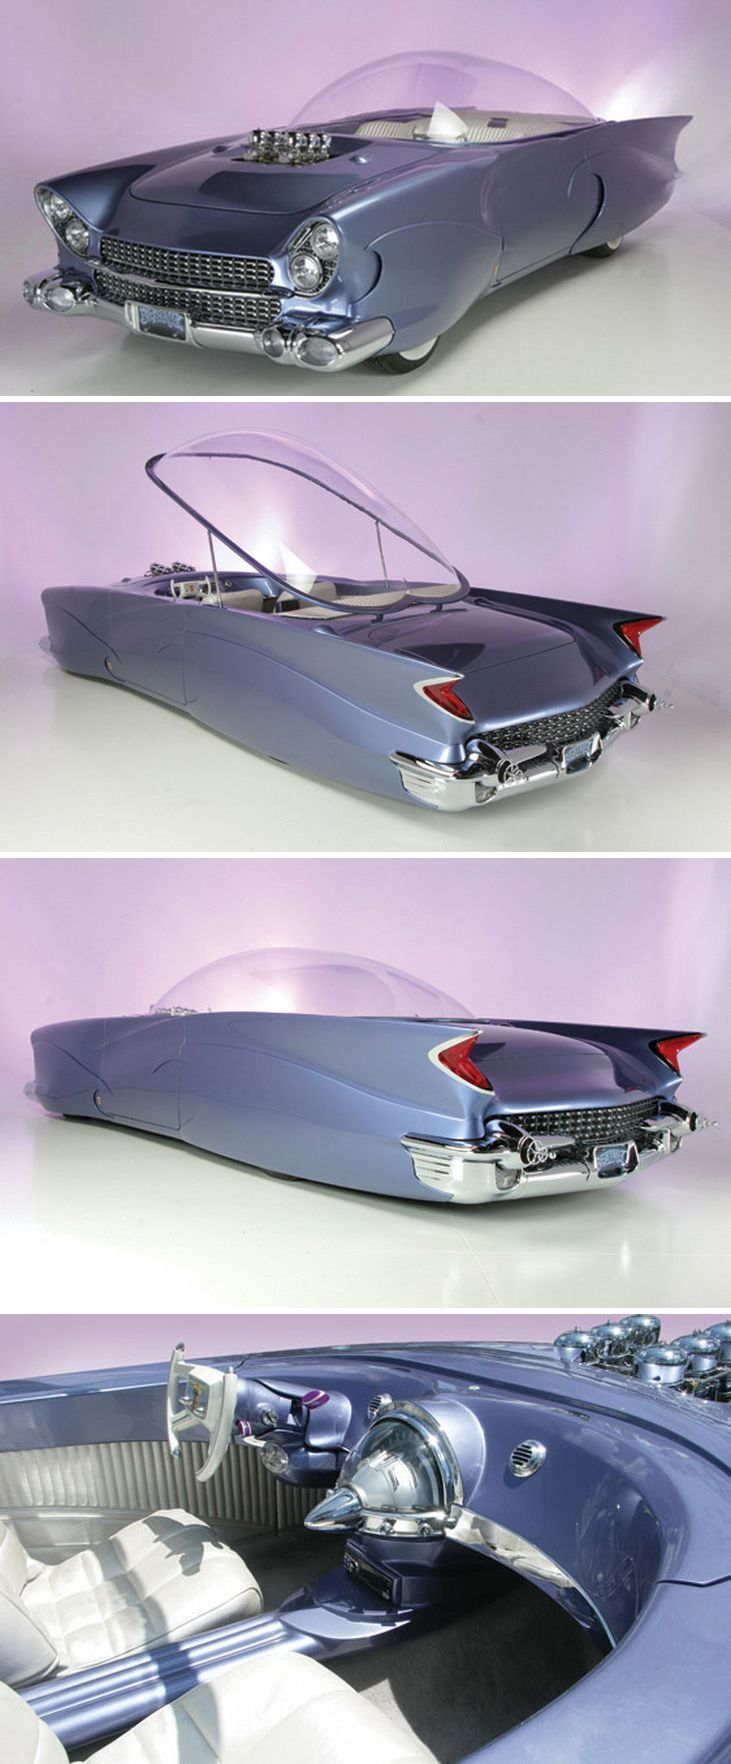 1955 Ford Beatnik Bubble Top concept car.  If this is genuine, then we now know where GM got its design inspiration for Late-50s / Early-60s Cadillacs.